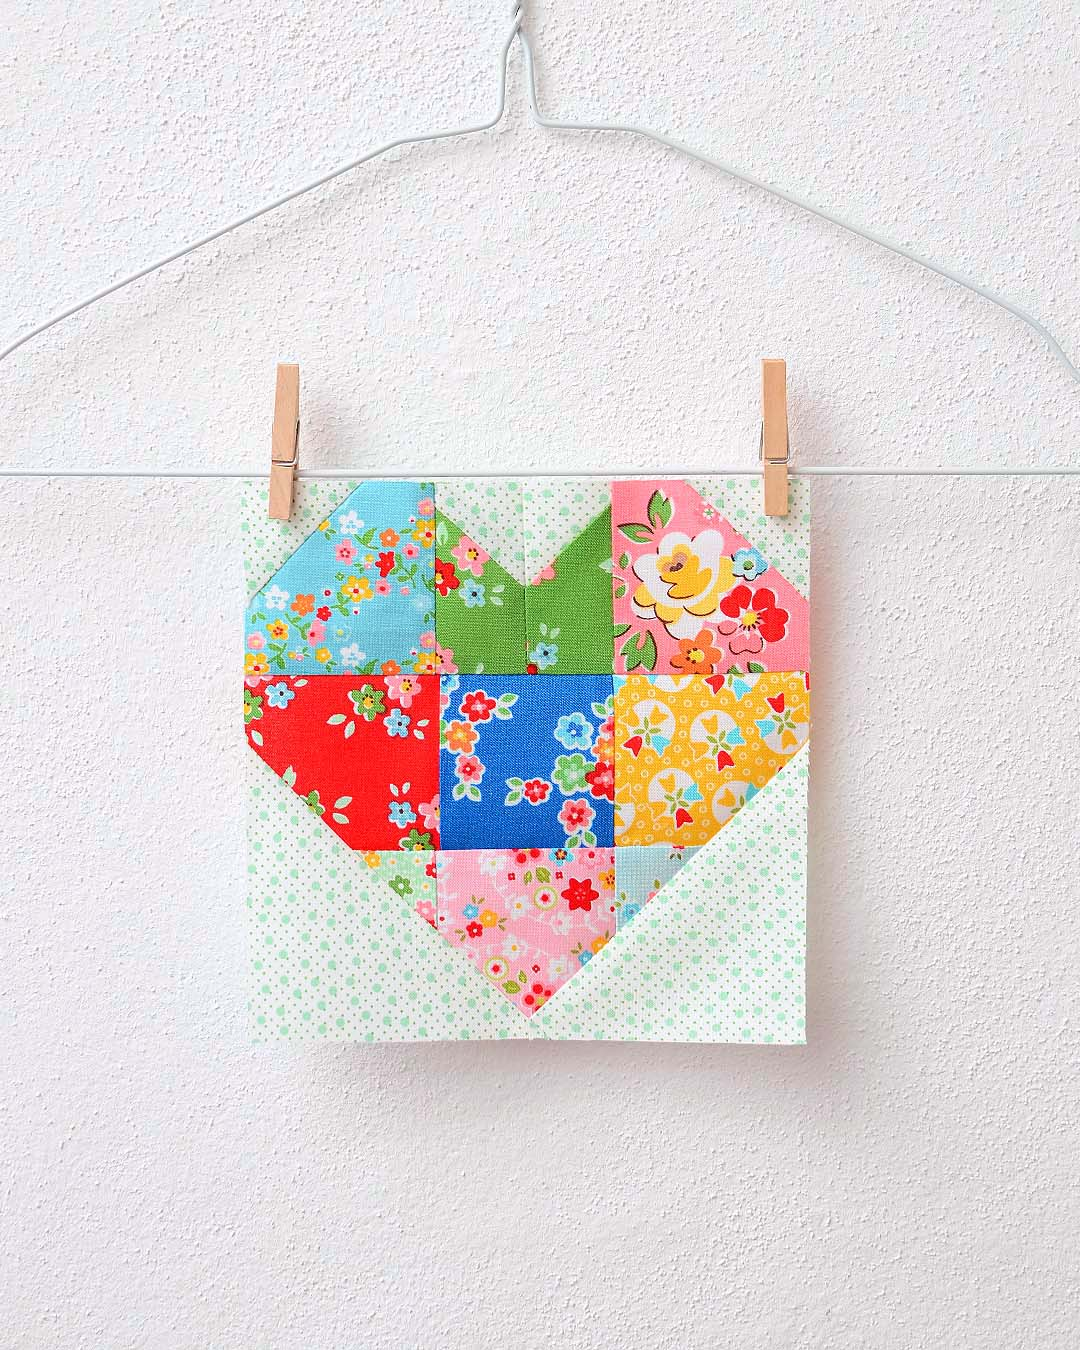 Spelling Bee Sew Along Small Heart Quilt Block by Nadra Ridgeway of ellis & higgs